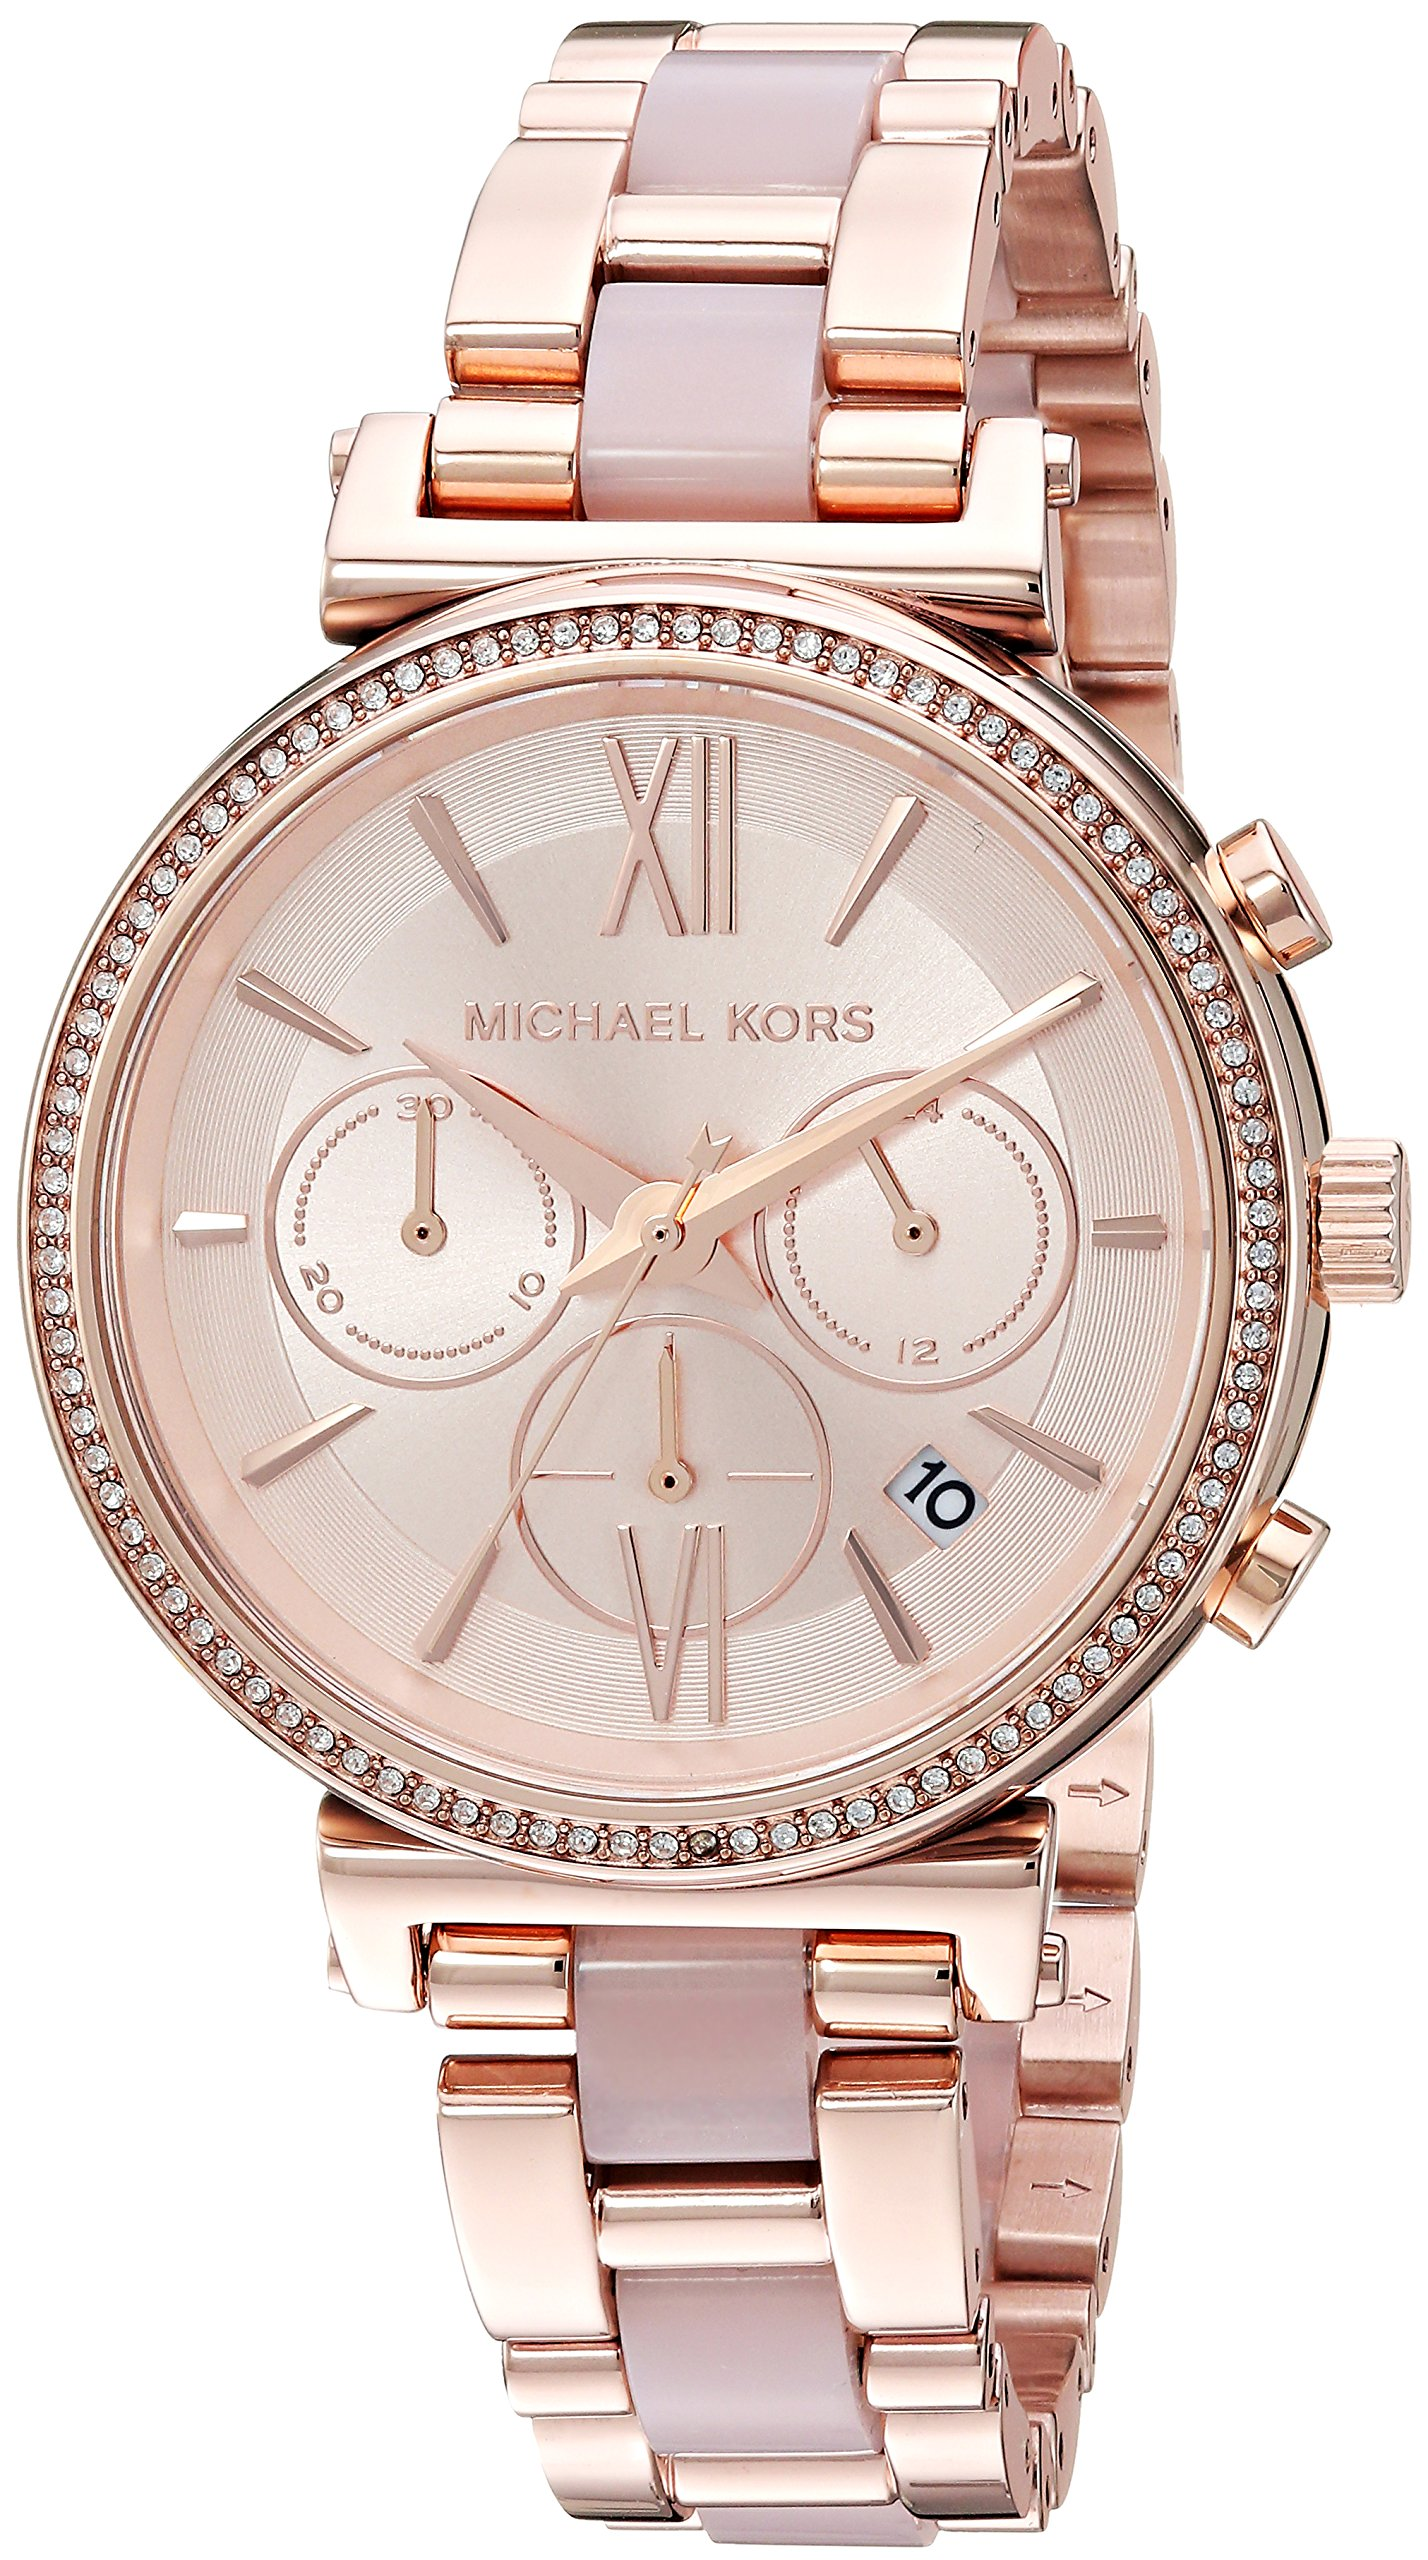 Michael Kors Women's Sofie Analog Display Analog Quartz Rose Gold Watch MK6560